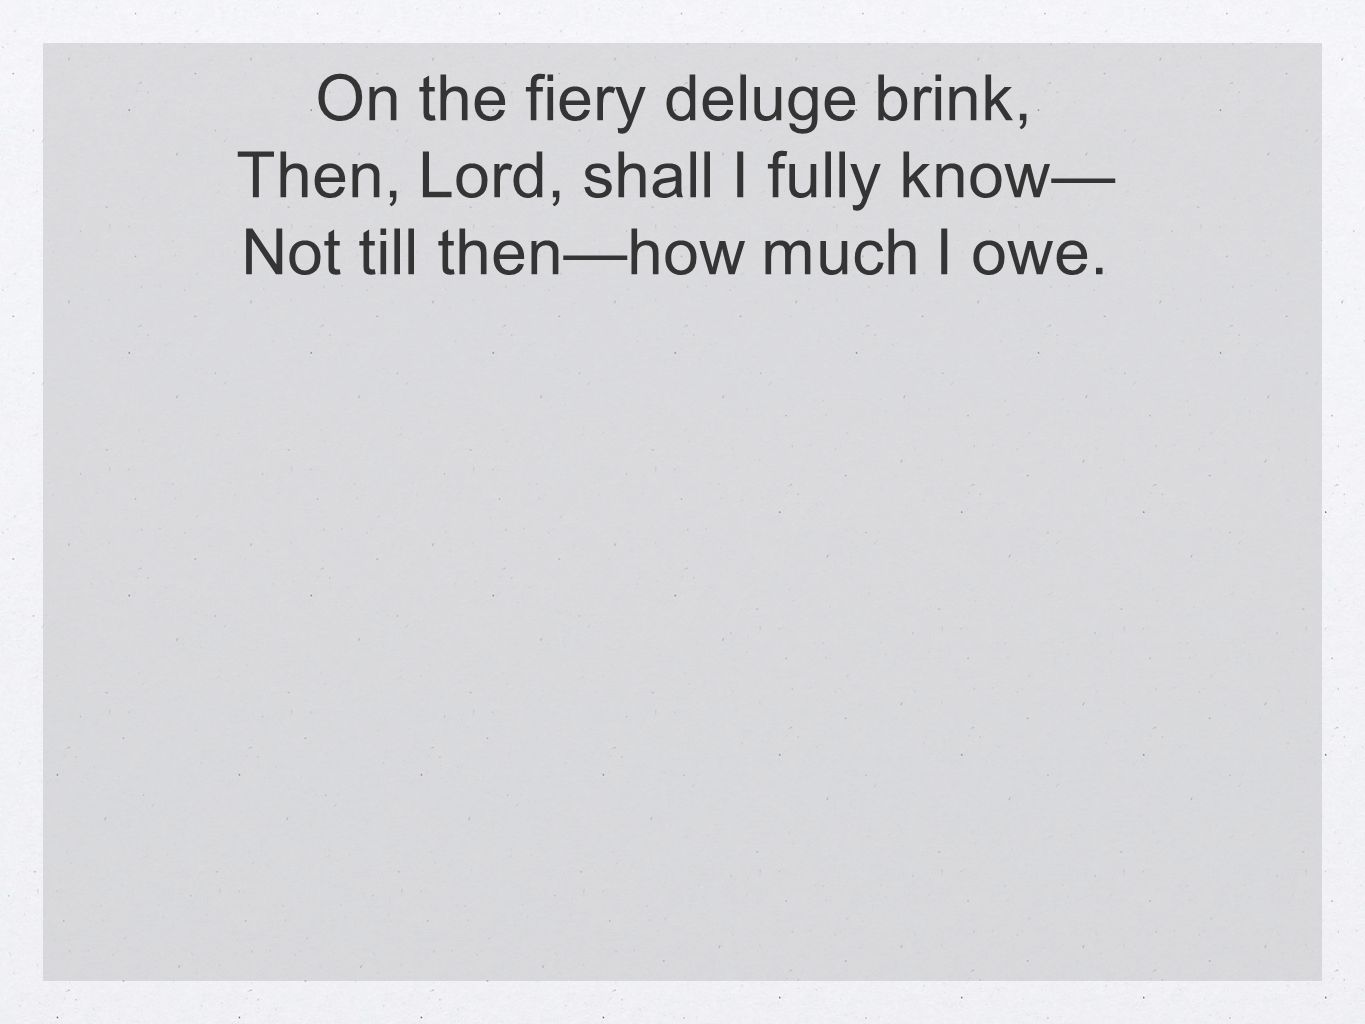 On the fiery deluge brink, Then, Lord, shall I fully know Not till thenhow much I owe.